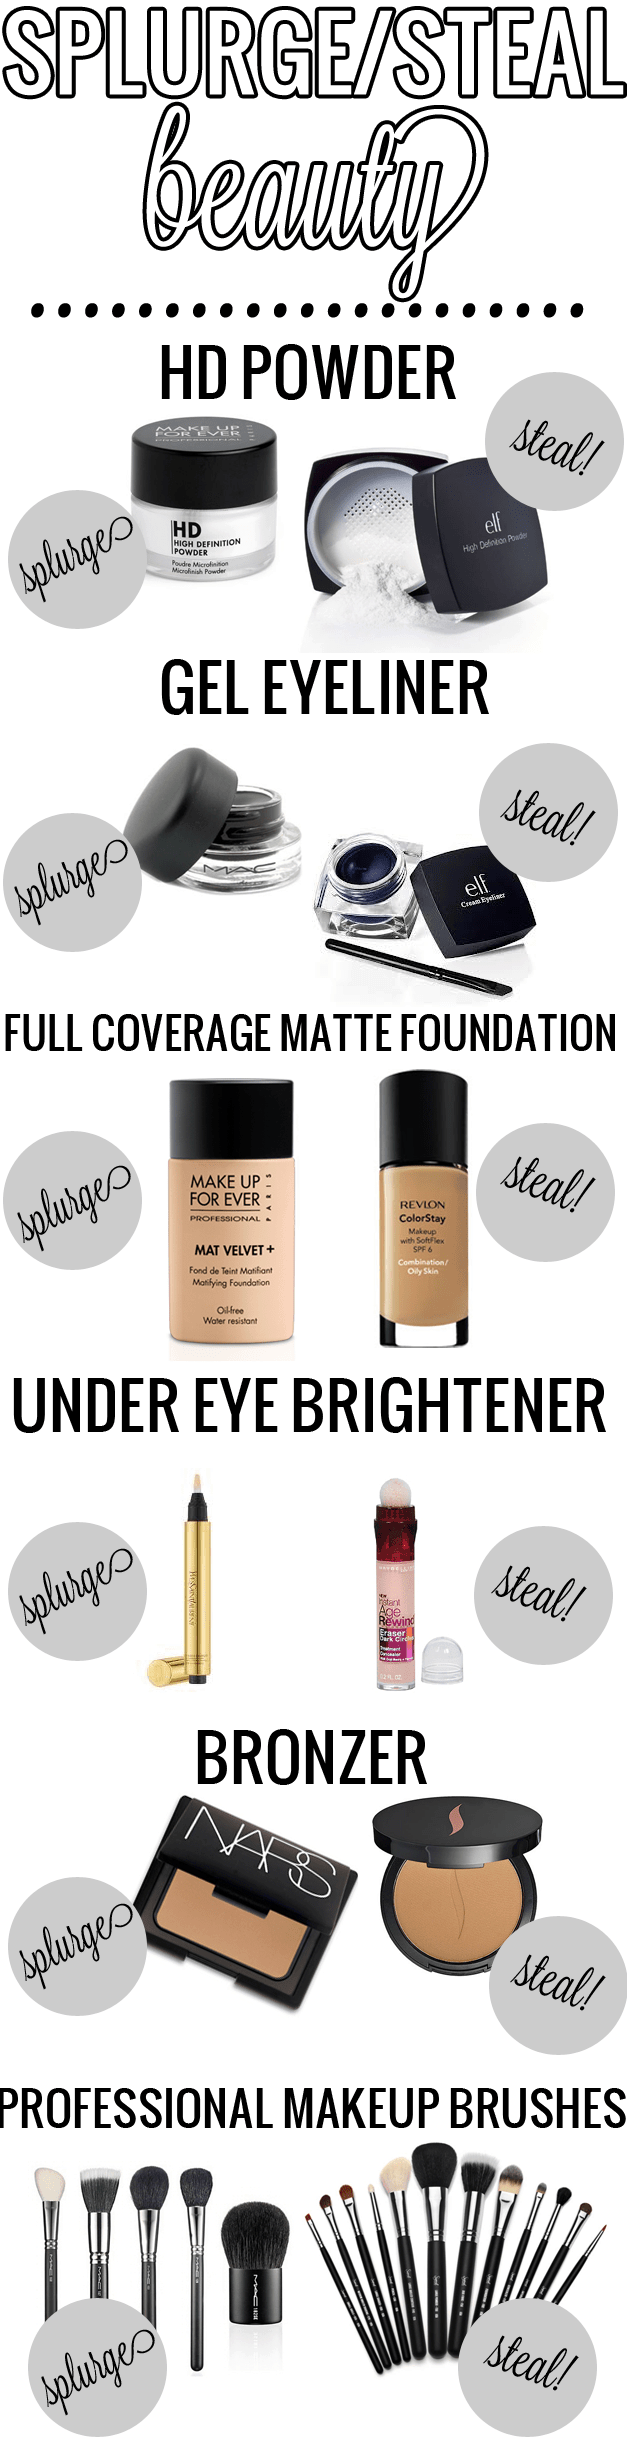 Splurge Steal Beauty High End Makeup Products Their Dupes Meg O